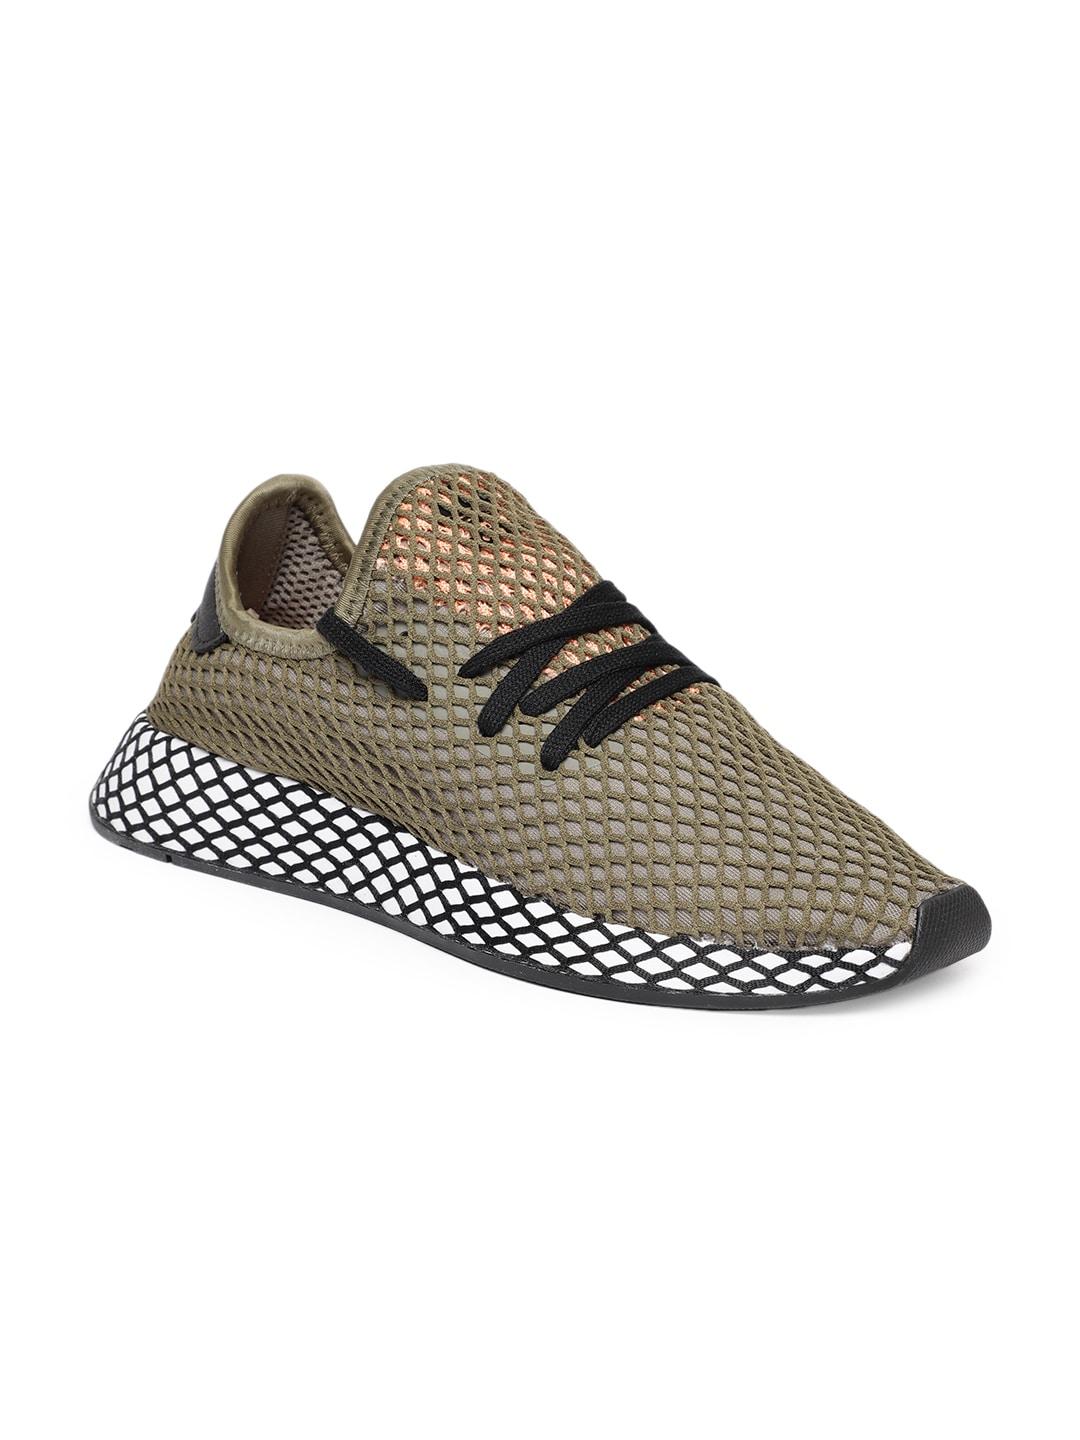 new arrivals 56c4c 86f96 Olive Green Men Casual Shoes - Buy Olive Green Men Casual Shoes online in  India